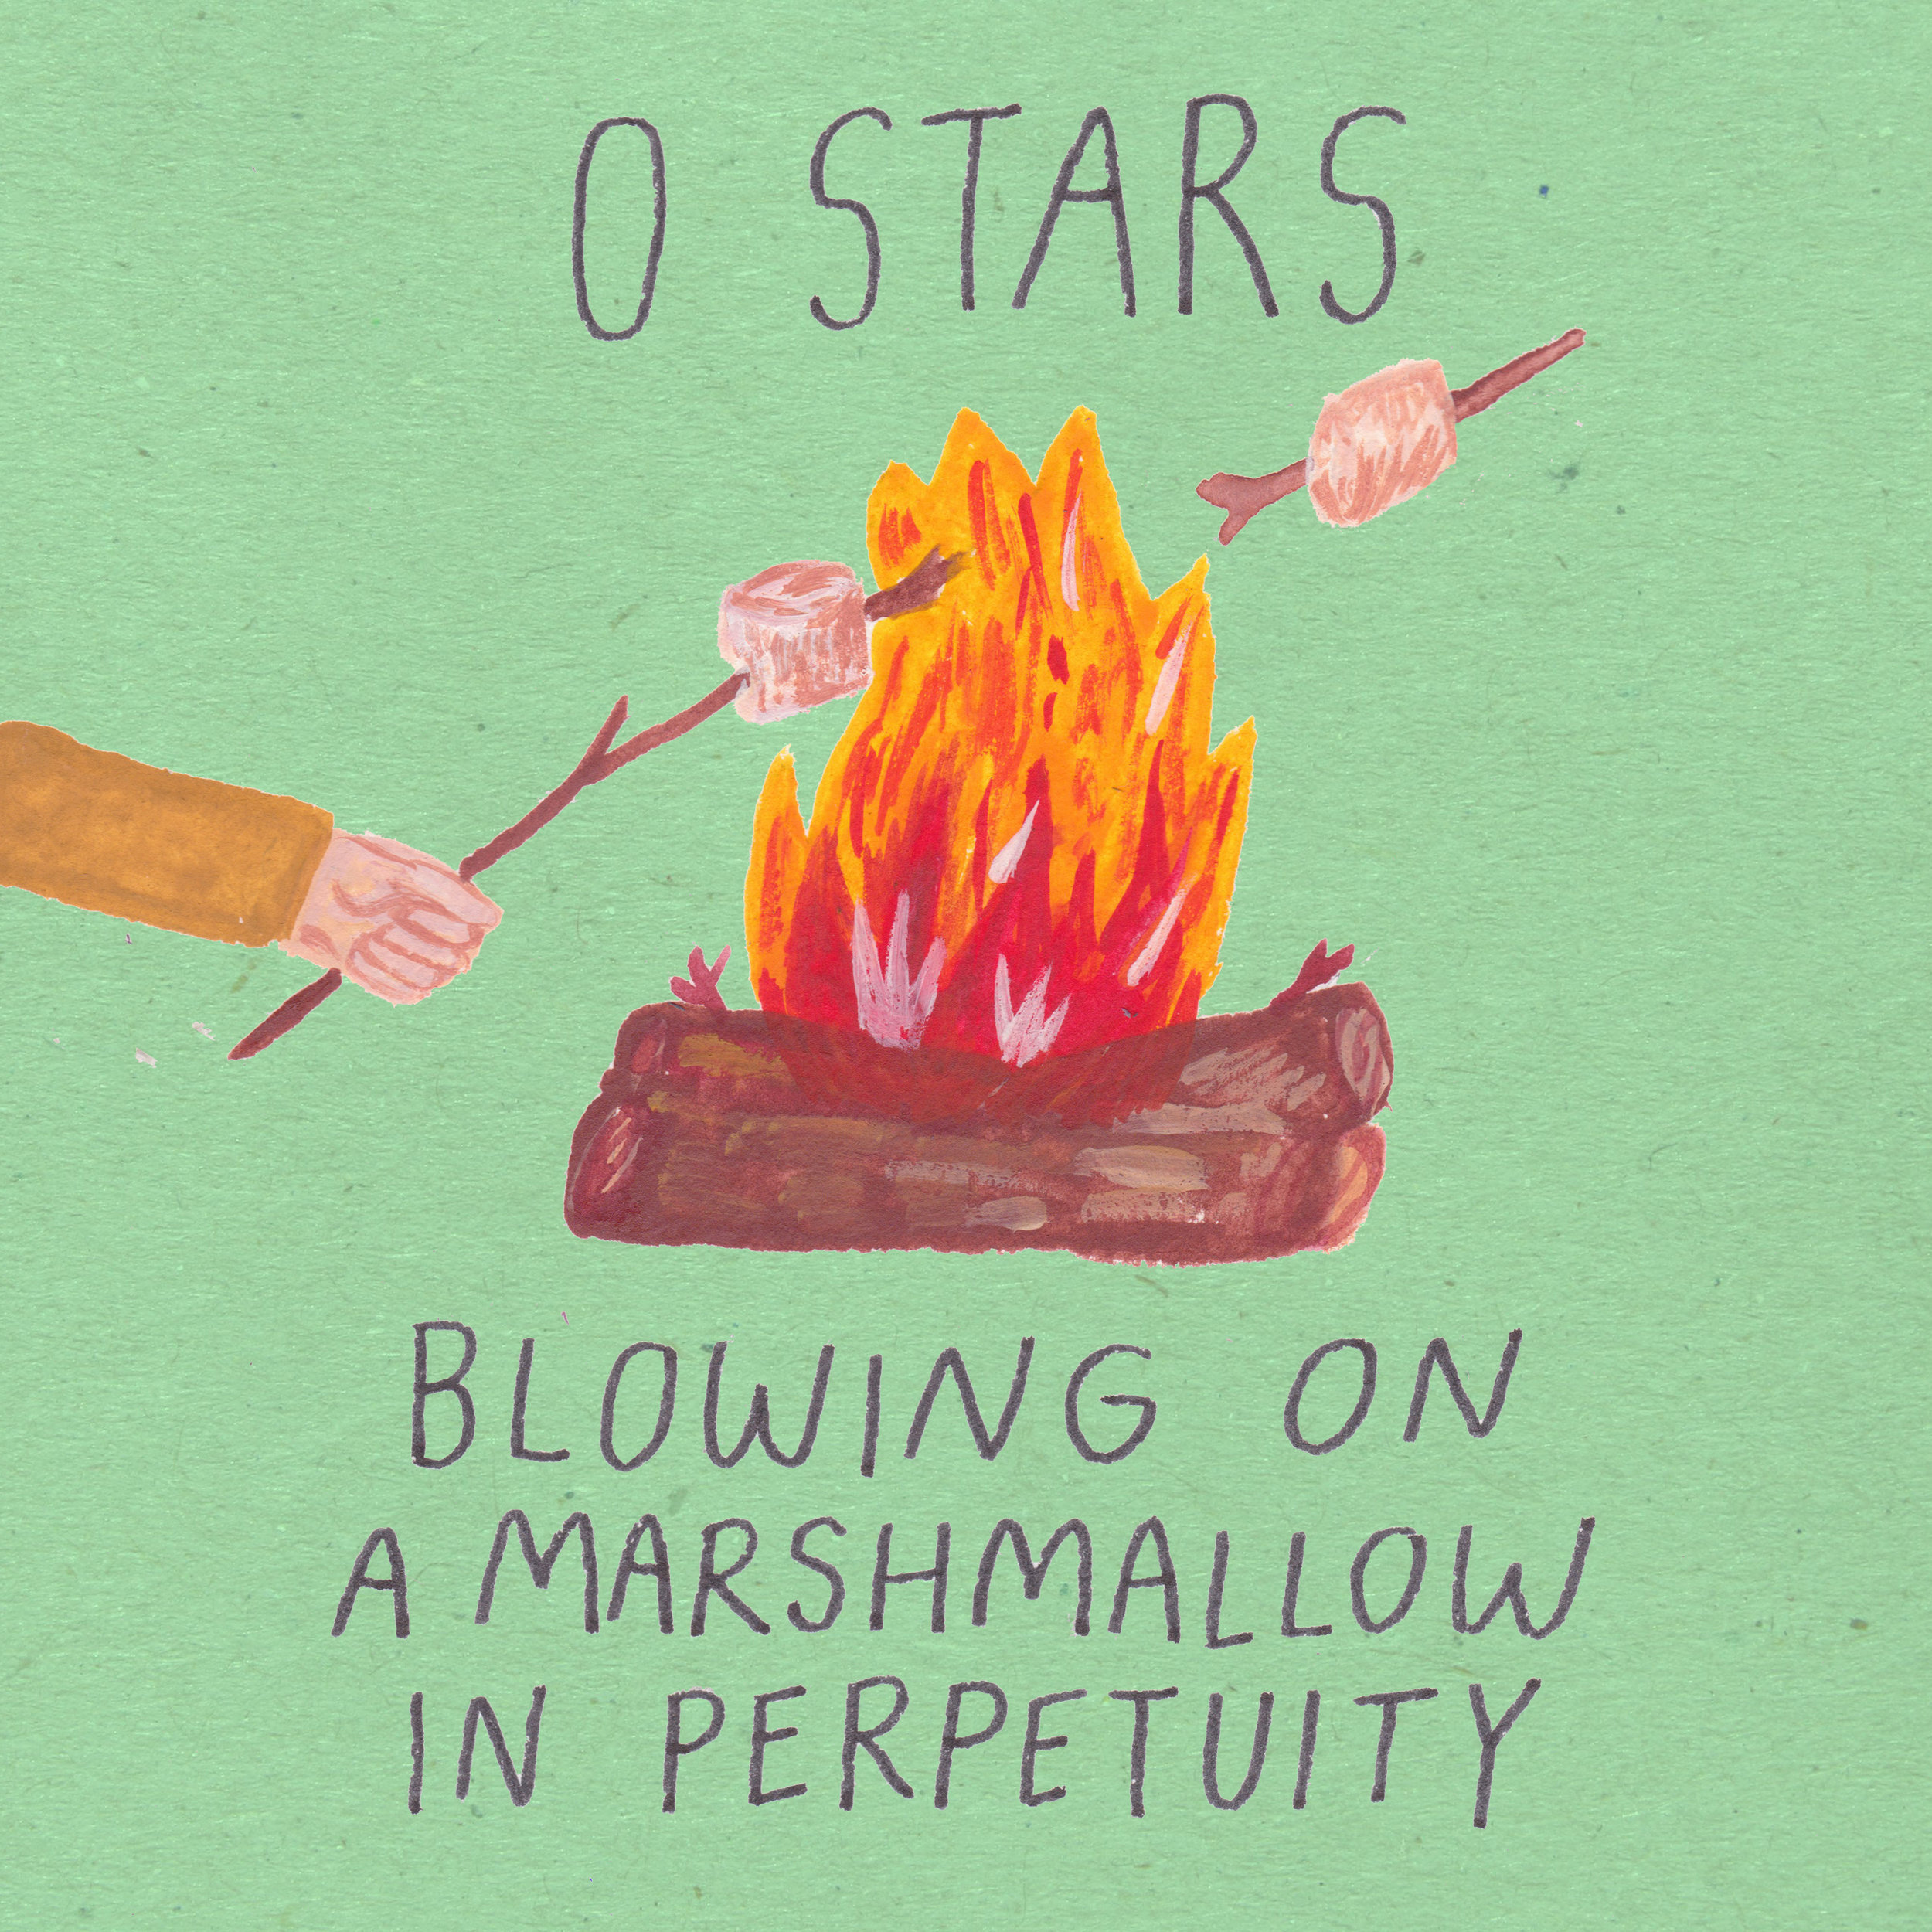 blowing on a marshmallow album cover (1).jpg